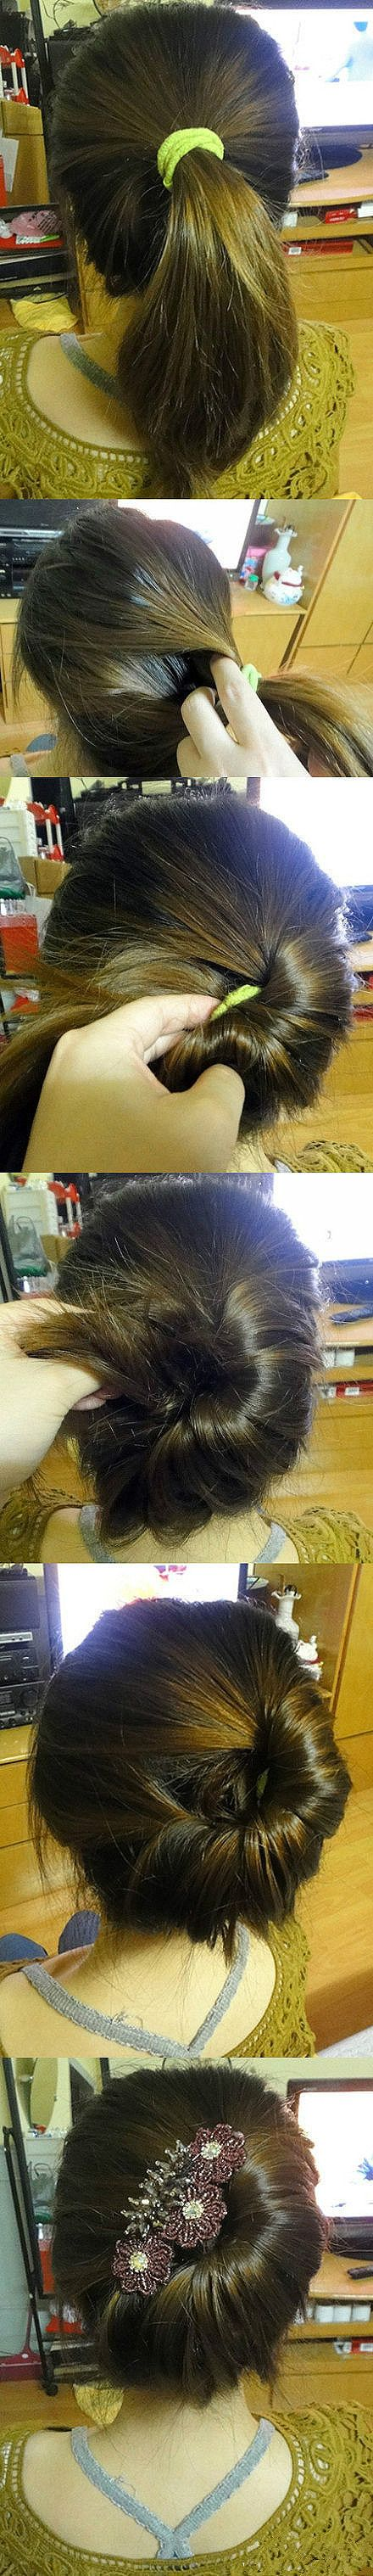 So simple it's stupid... Need to buy some cute hair clips!